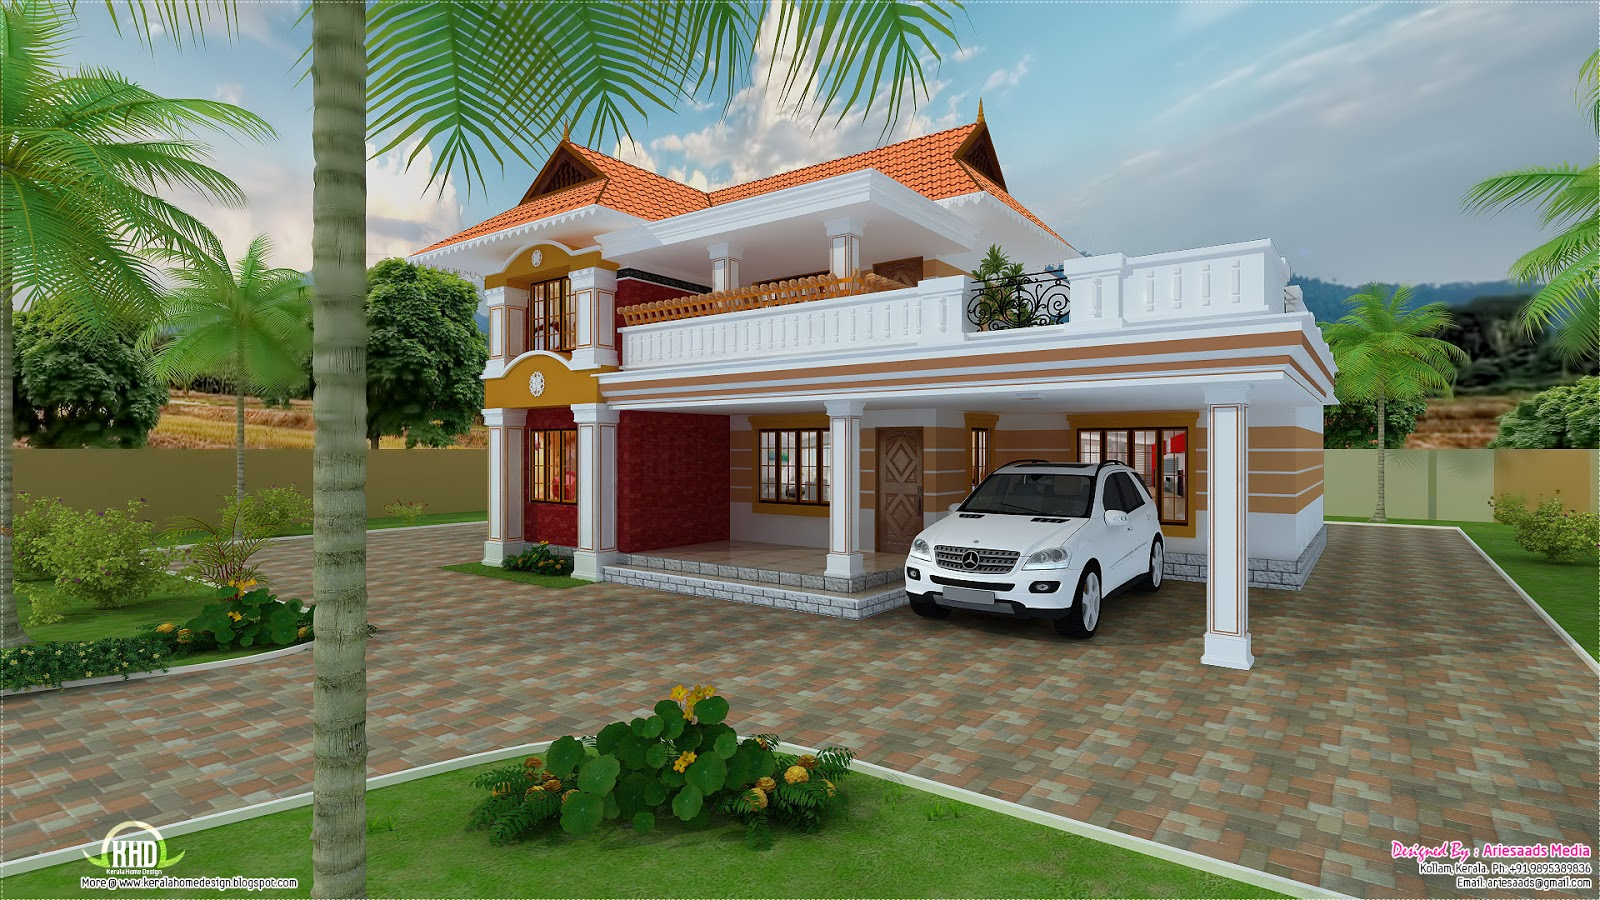 to know more about this villa contact house design kollam